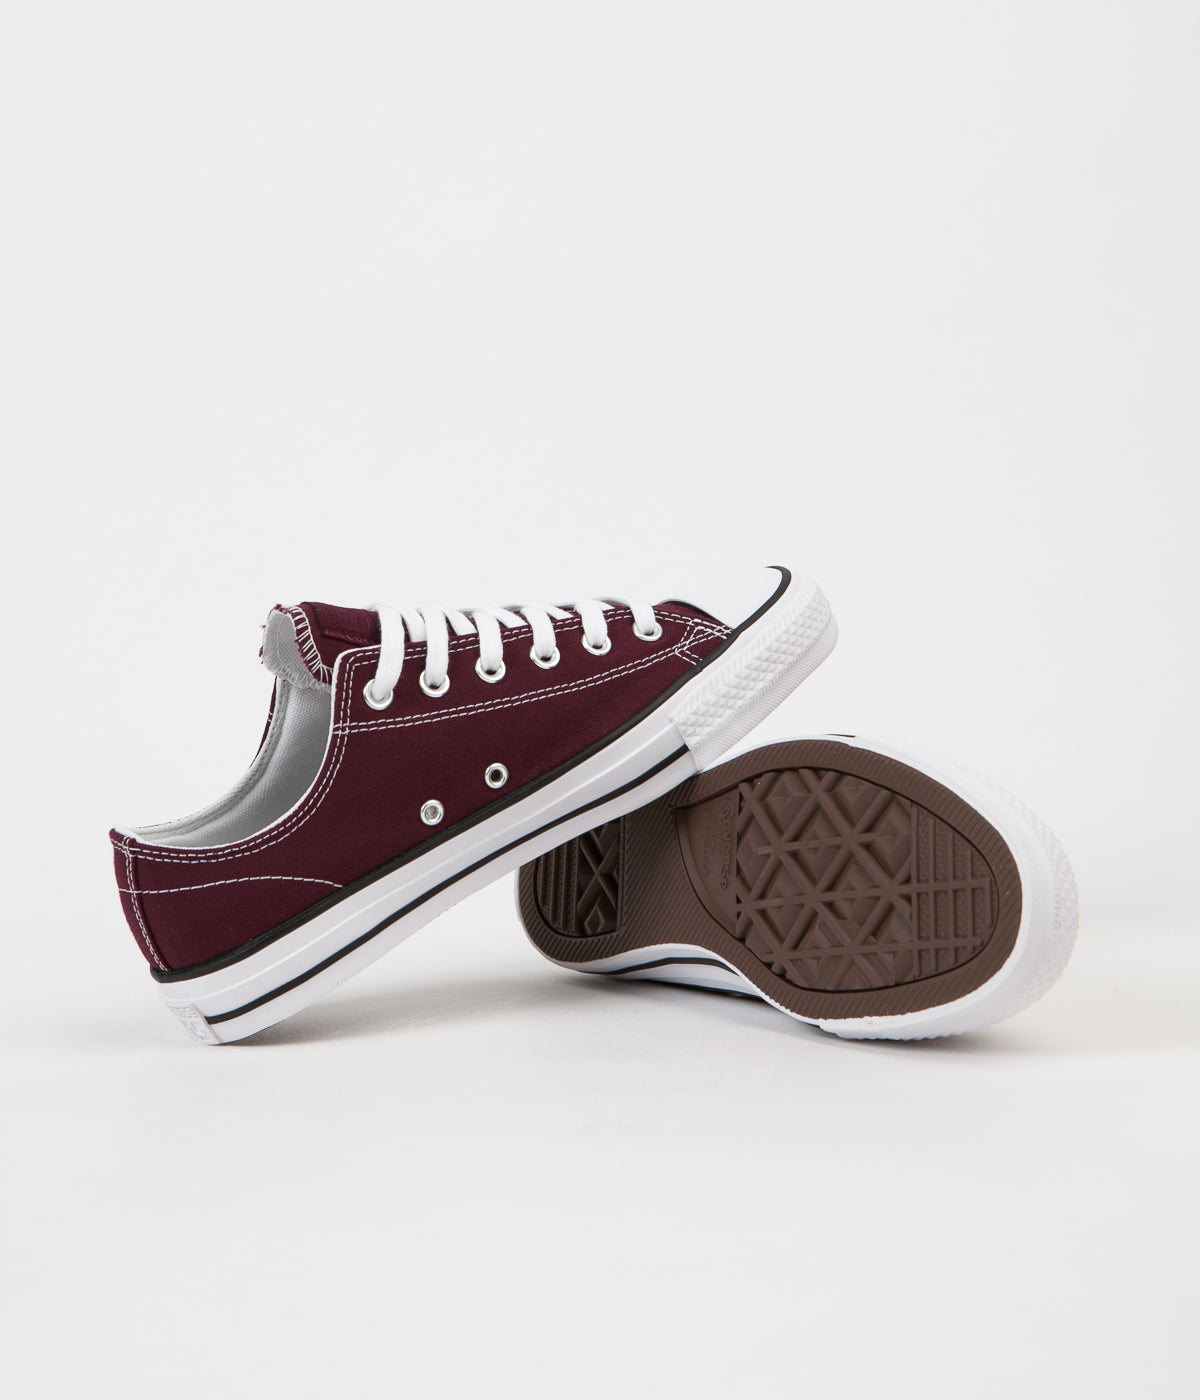 Converse CTAS Pro Ox Shoes - Dark Sangria / White